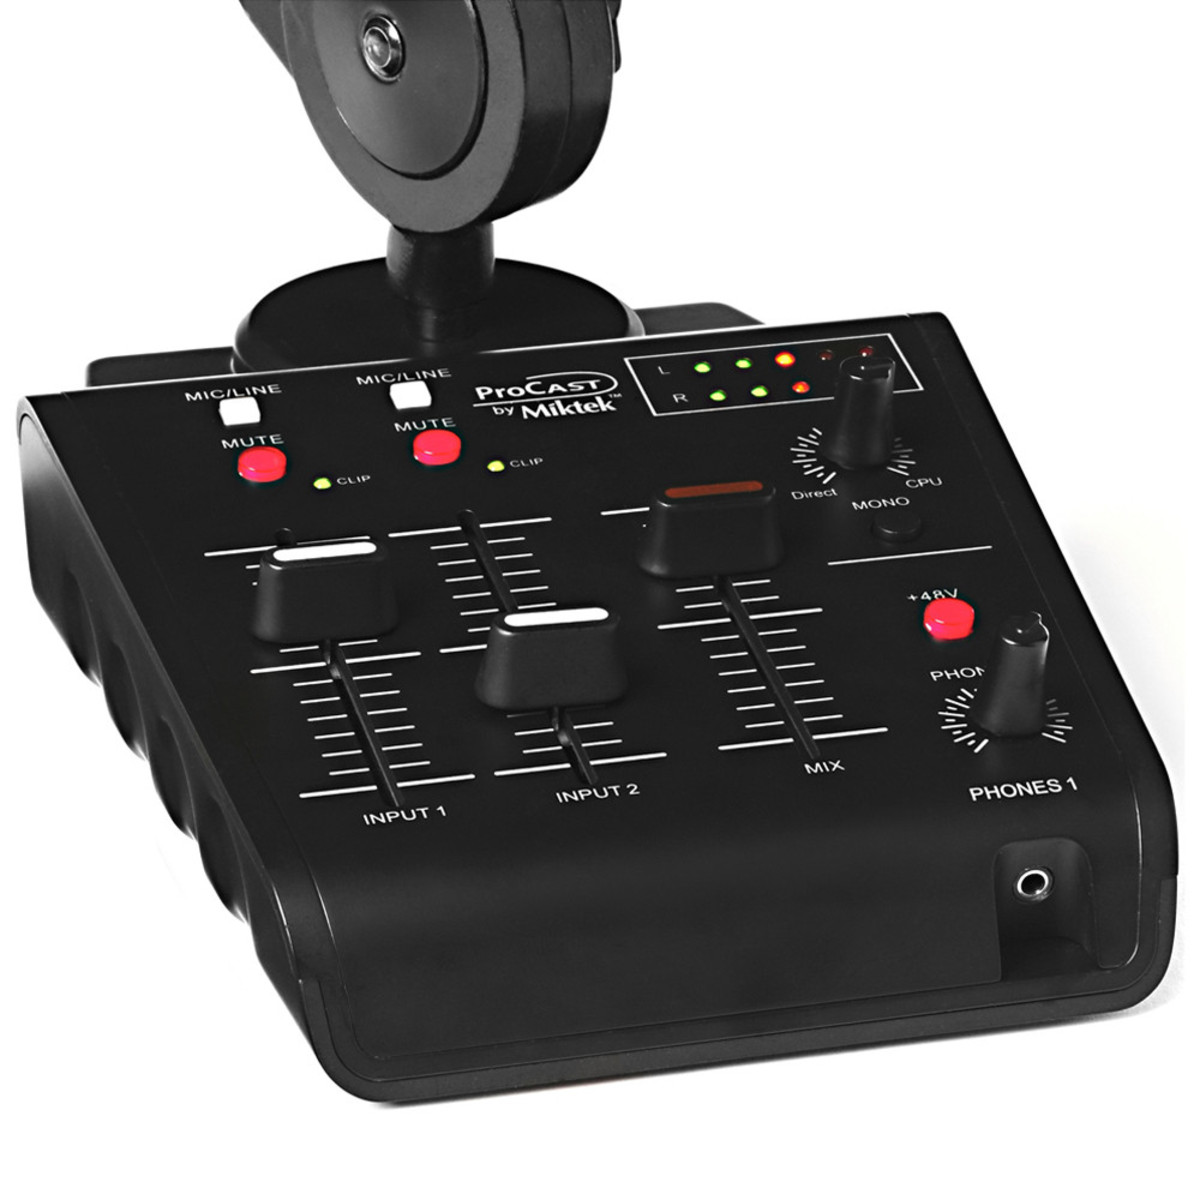 miktek procast usb mic mixer broadcast stand and cables at gear4music. Black Bedroom Furniture Sets. Home Design Ideas